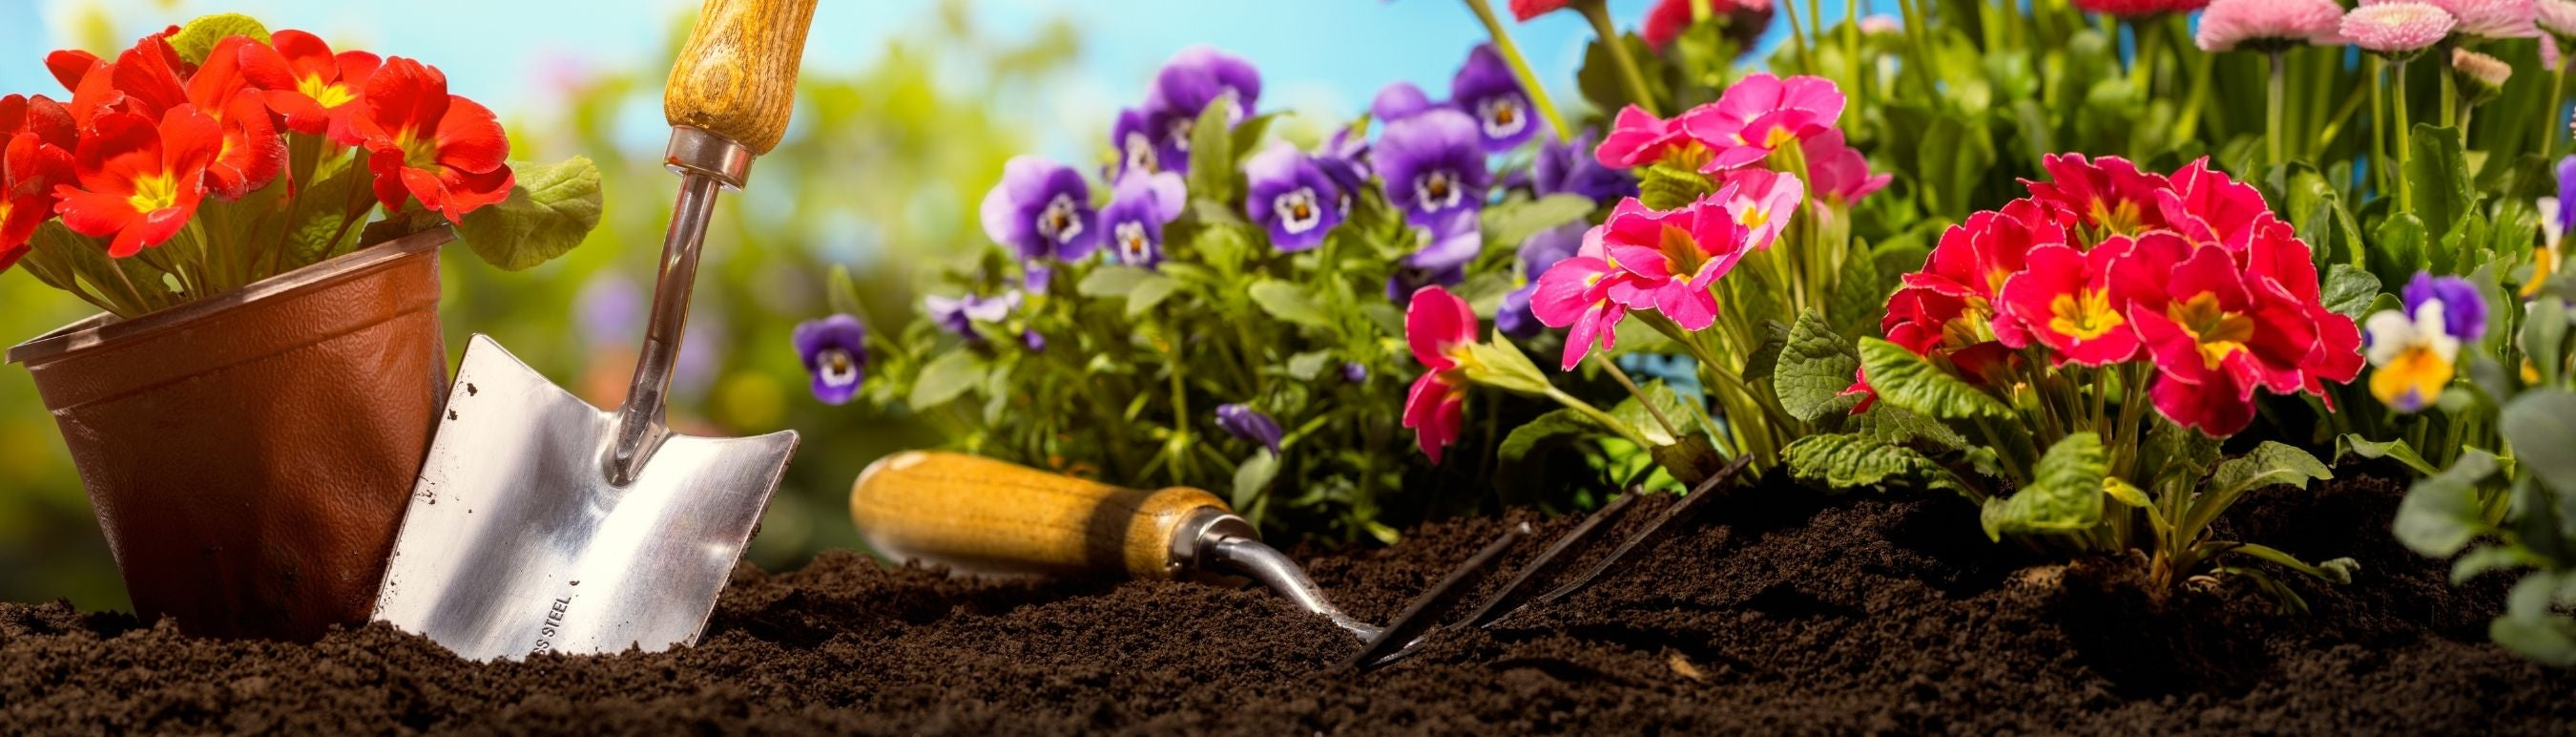 Garden Care Products